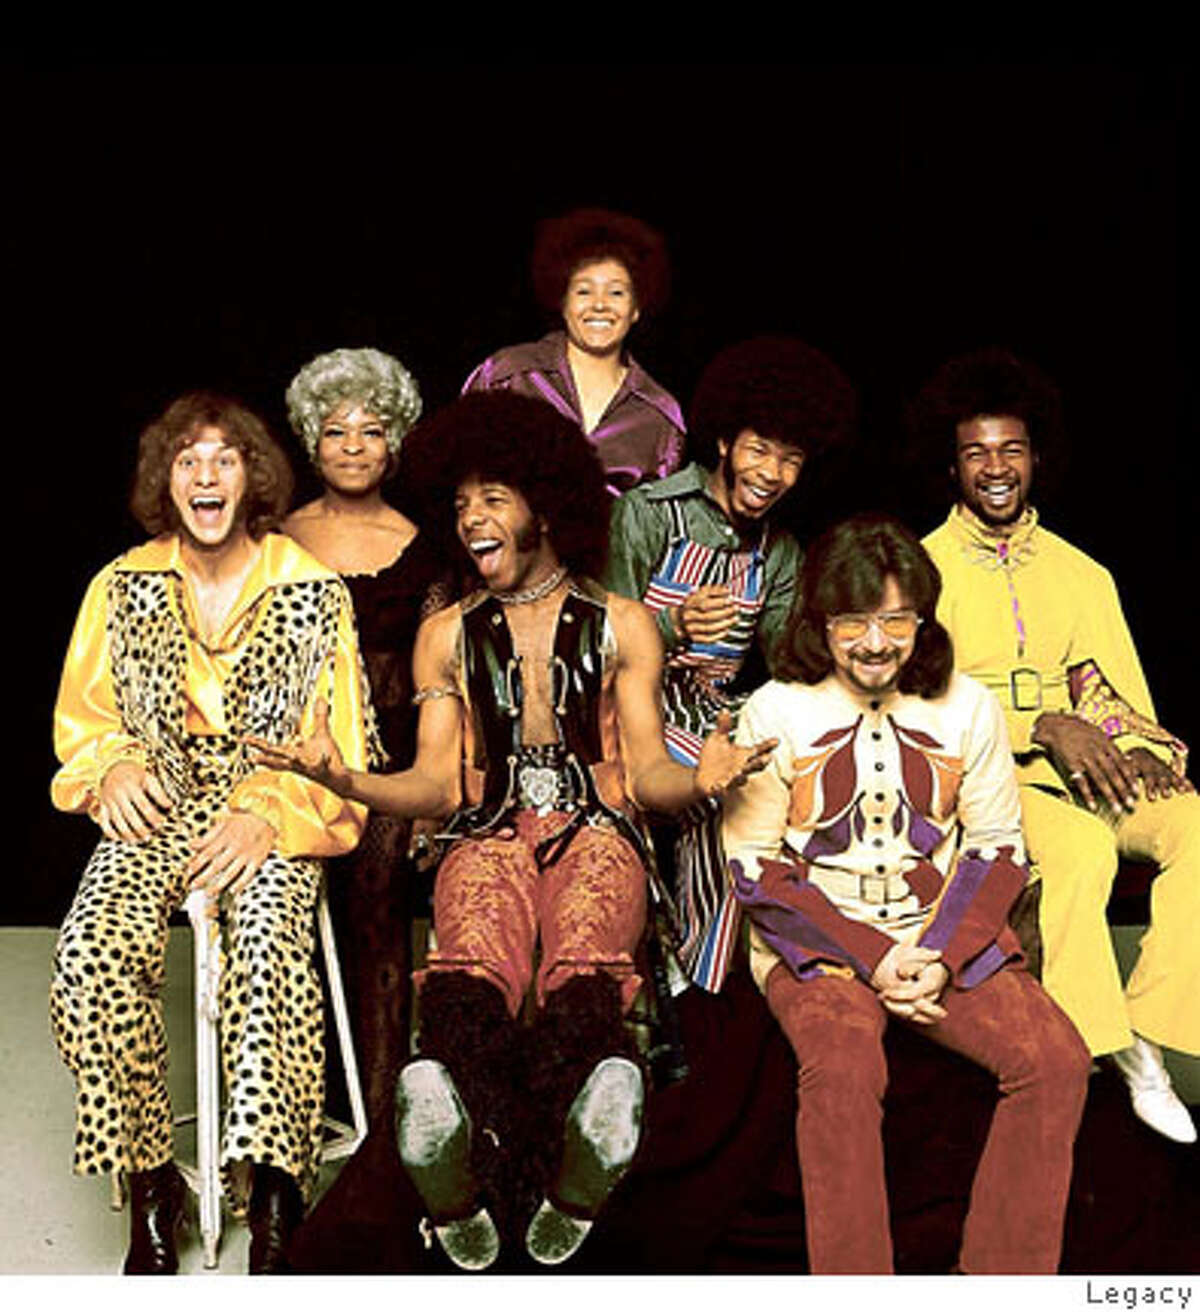 Sly and the Family Stone. Credit: Legacy